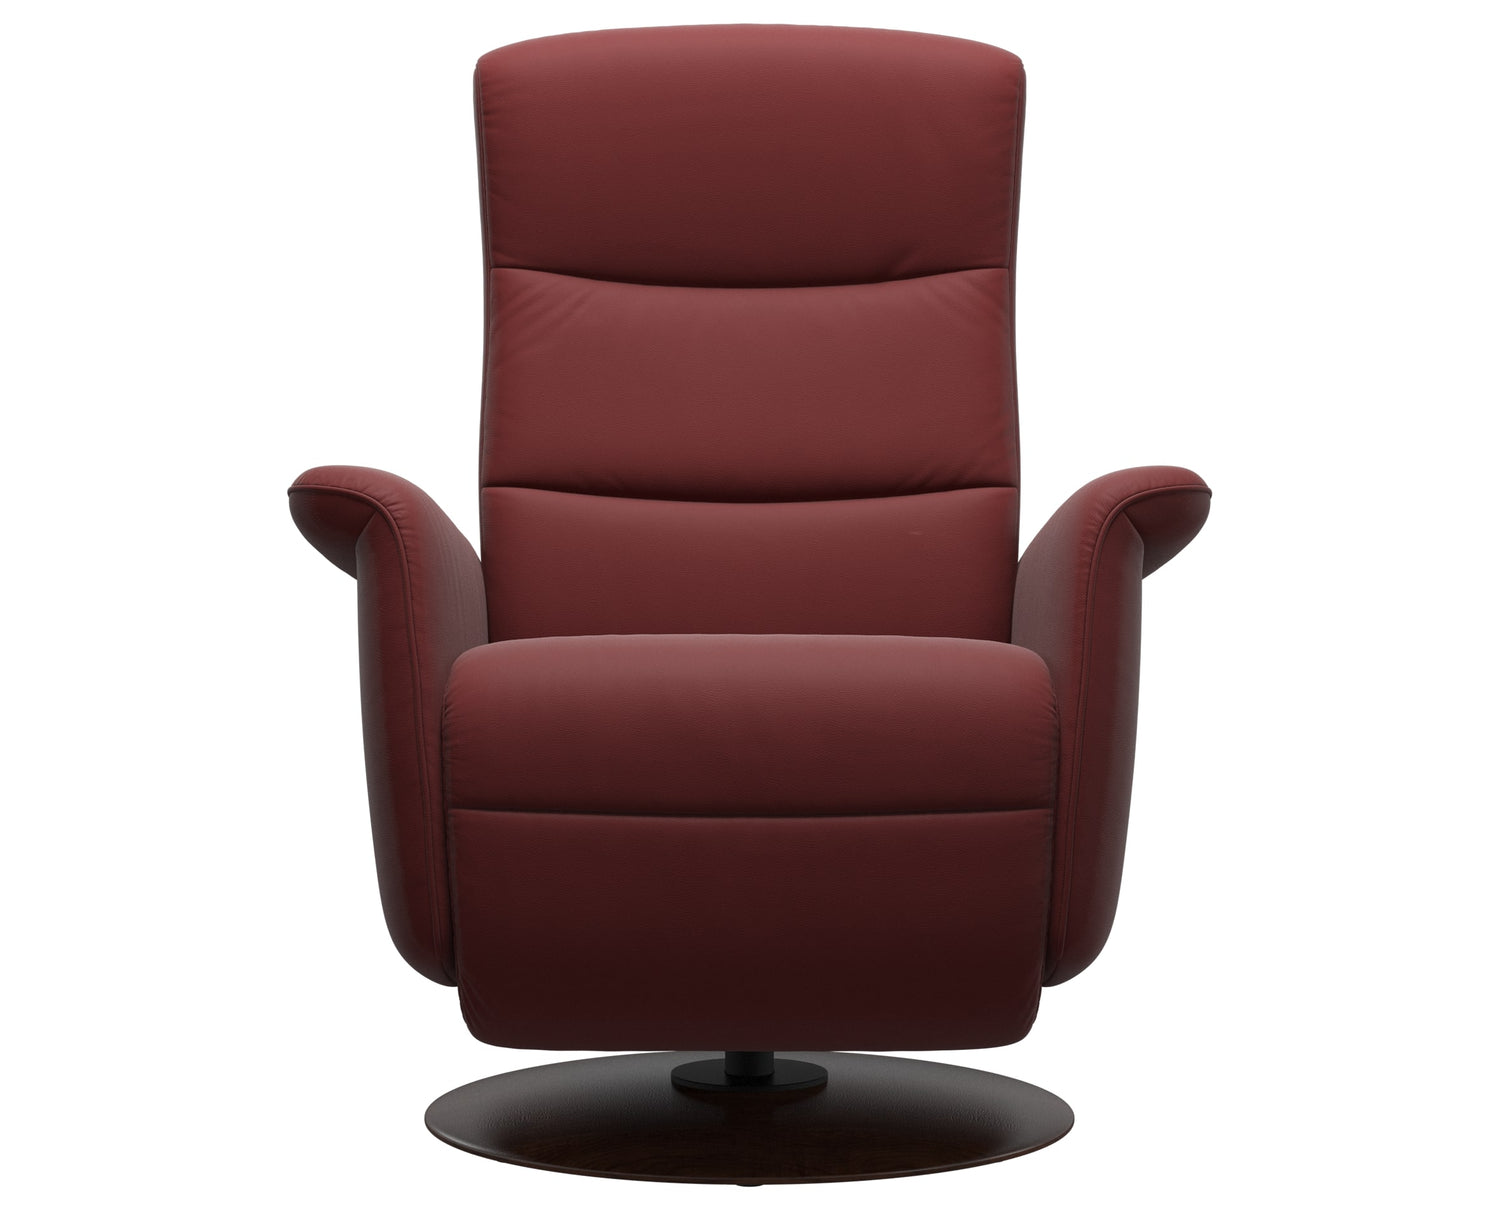 Paloma Leather Cherry S/M/L & Brown Base | Stressless Mike Recliner | Valley Ridge Furniture